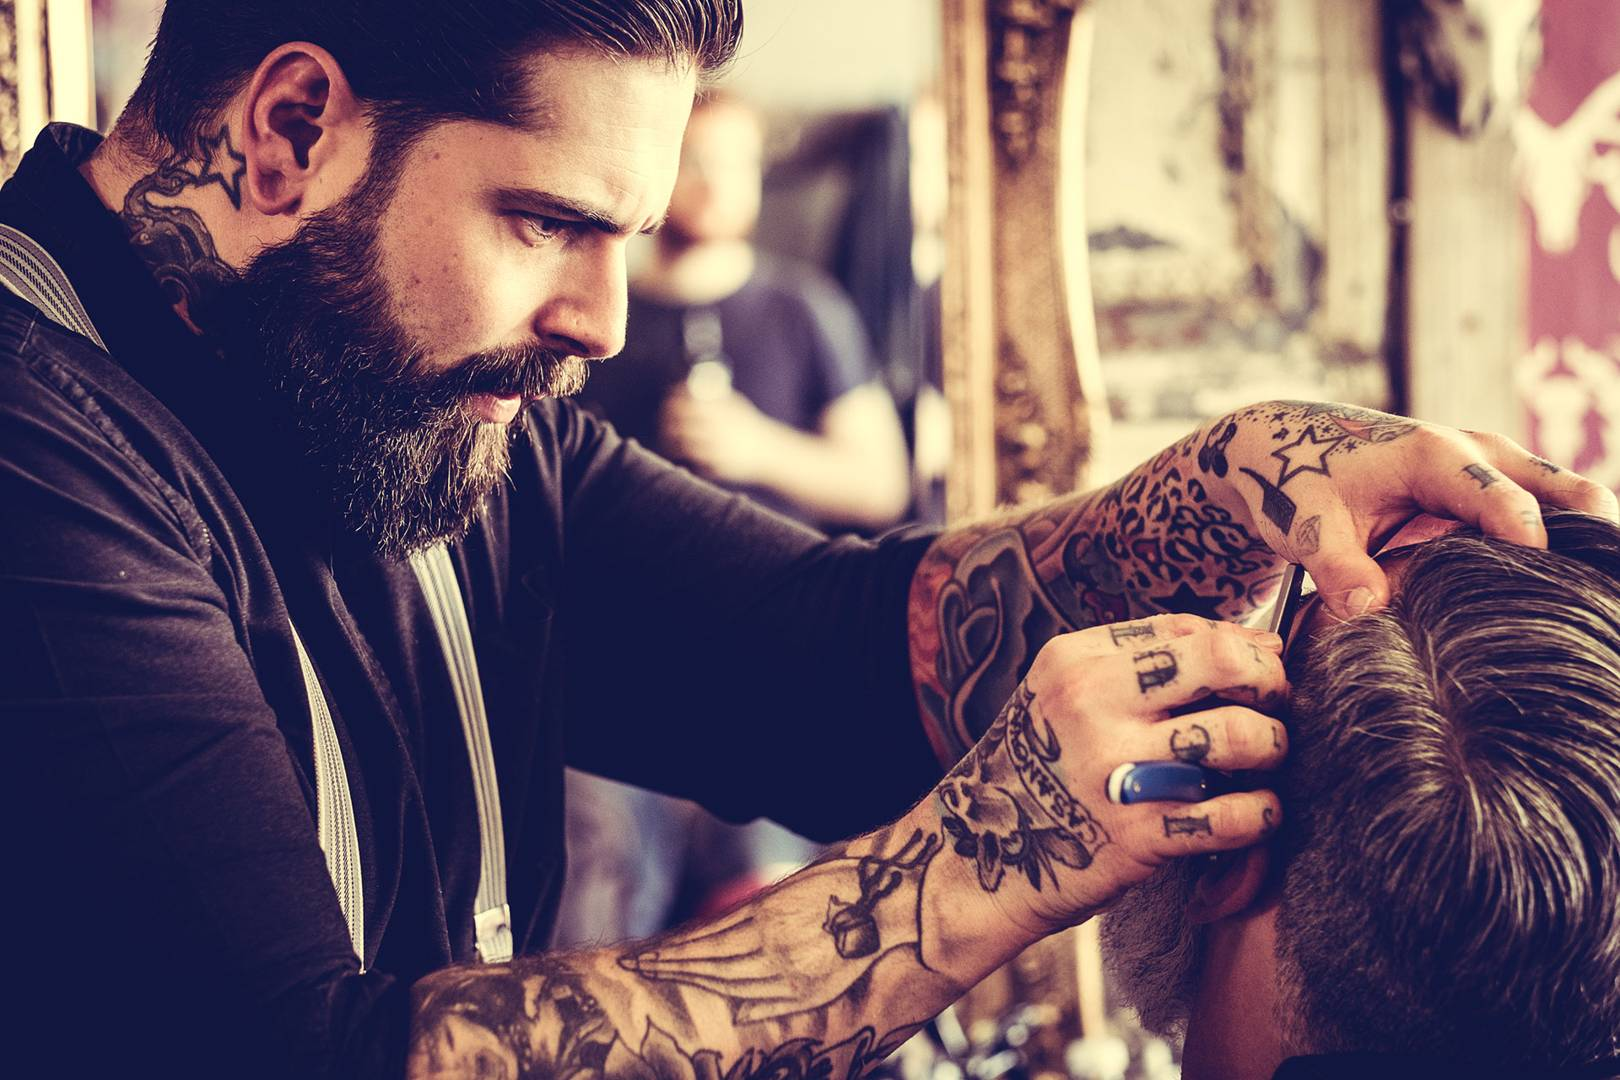 world suicide prevention day: the lions barber collective are